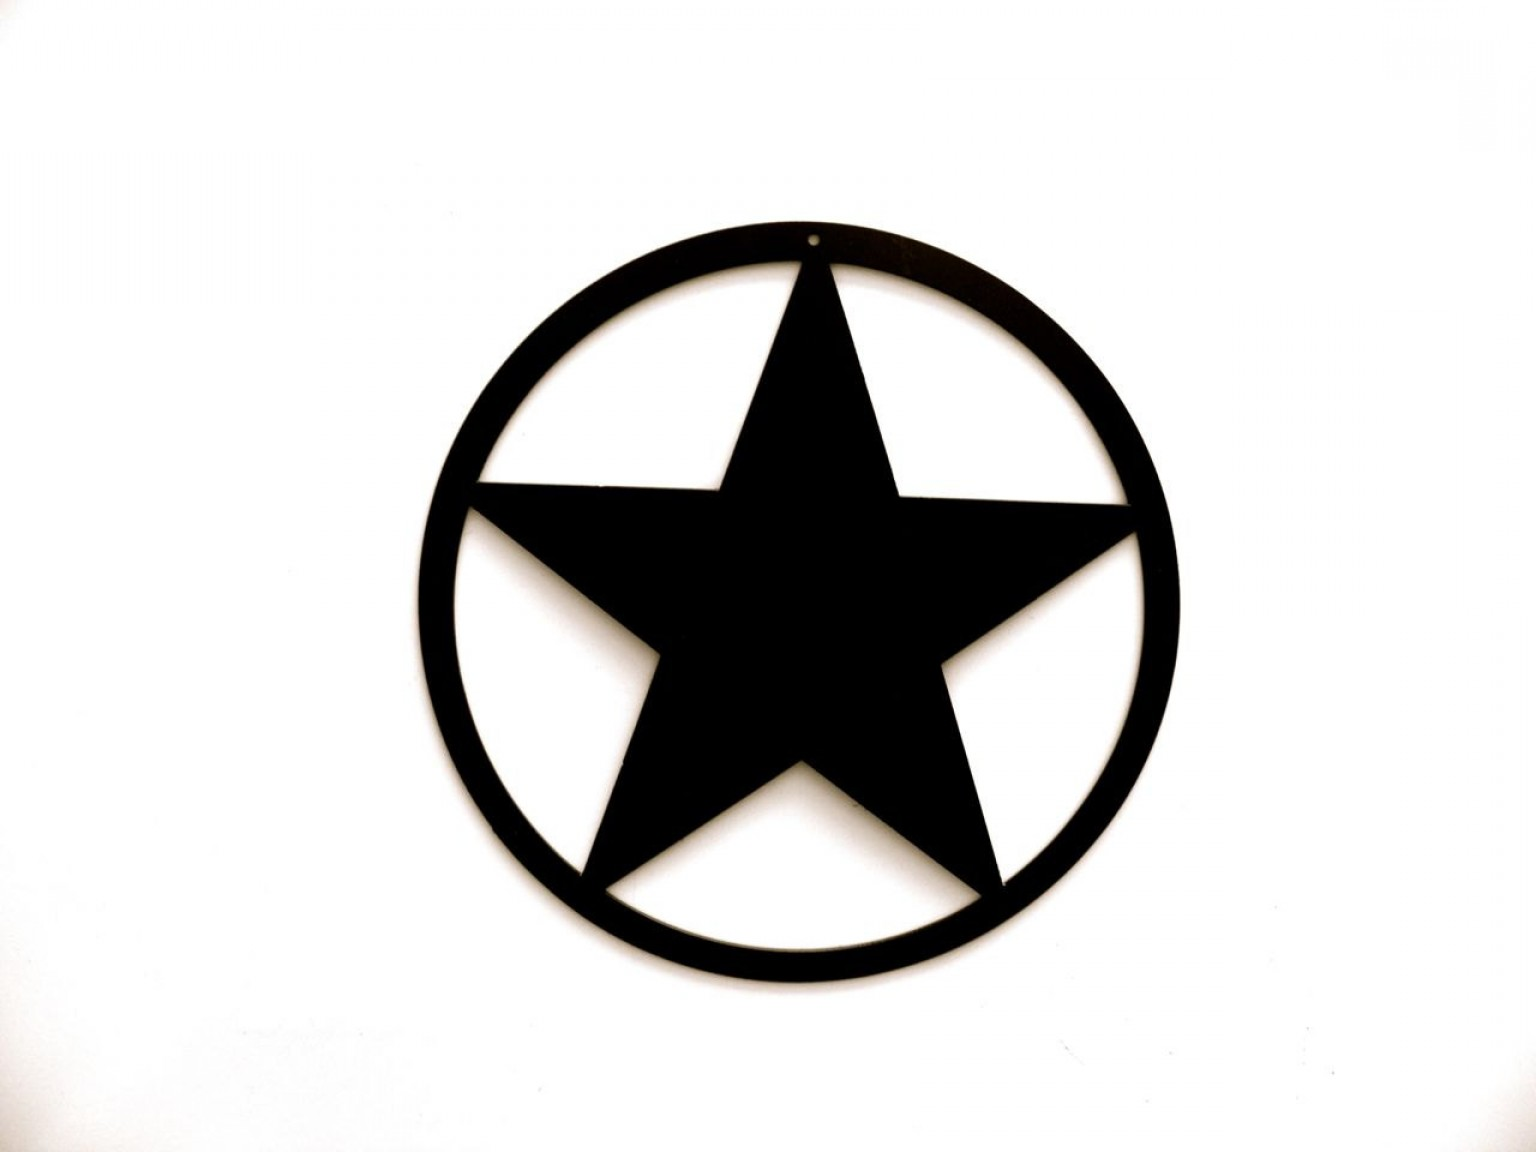 Texas Star Cliparts.